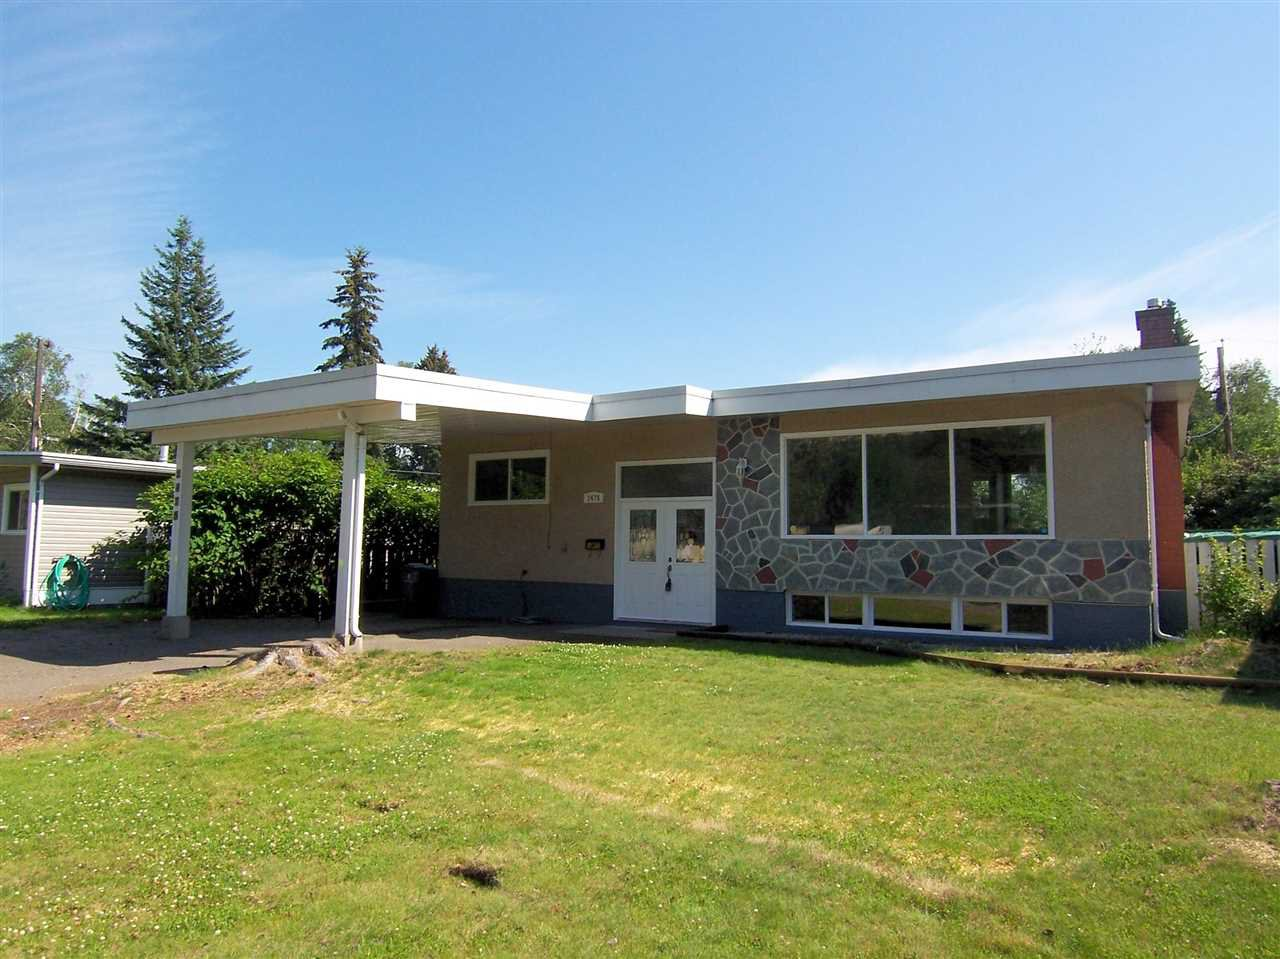 "Main Photo: 2475 HAMMOND Avenue in Prince George: Nechako View House for sale in ""NECHAKO VIEW"" (PG City Central (Zone 72))  : MLS®# R2092148"